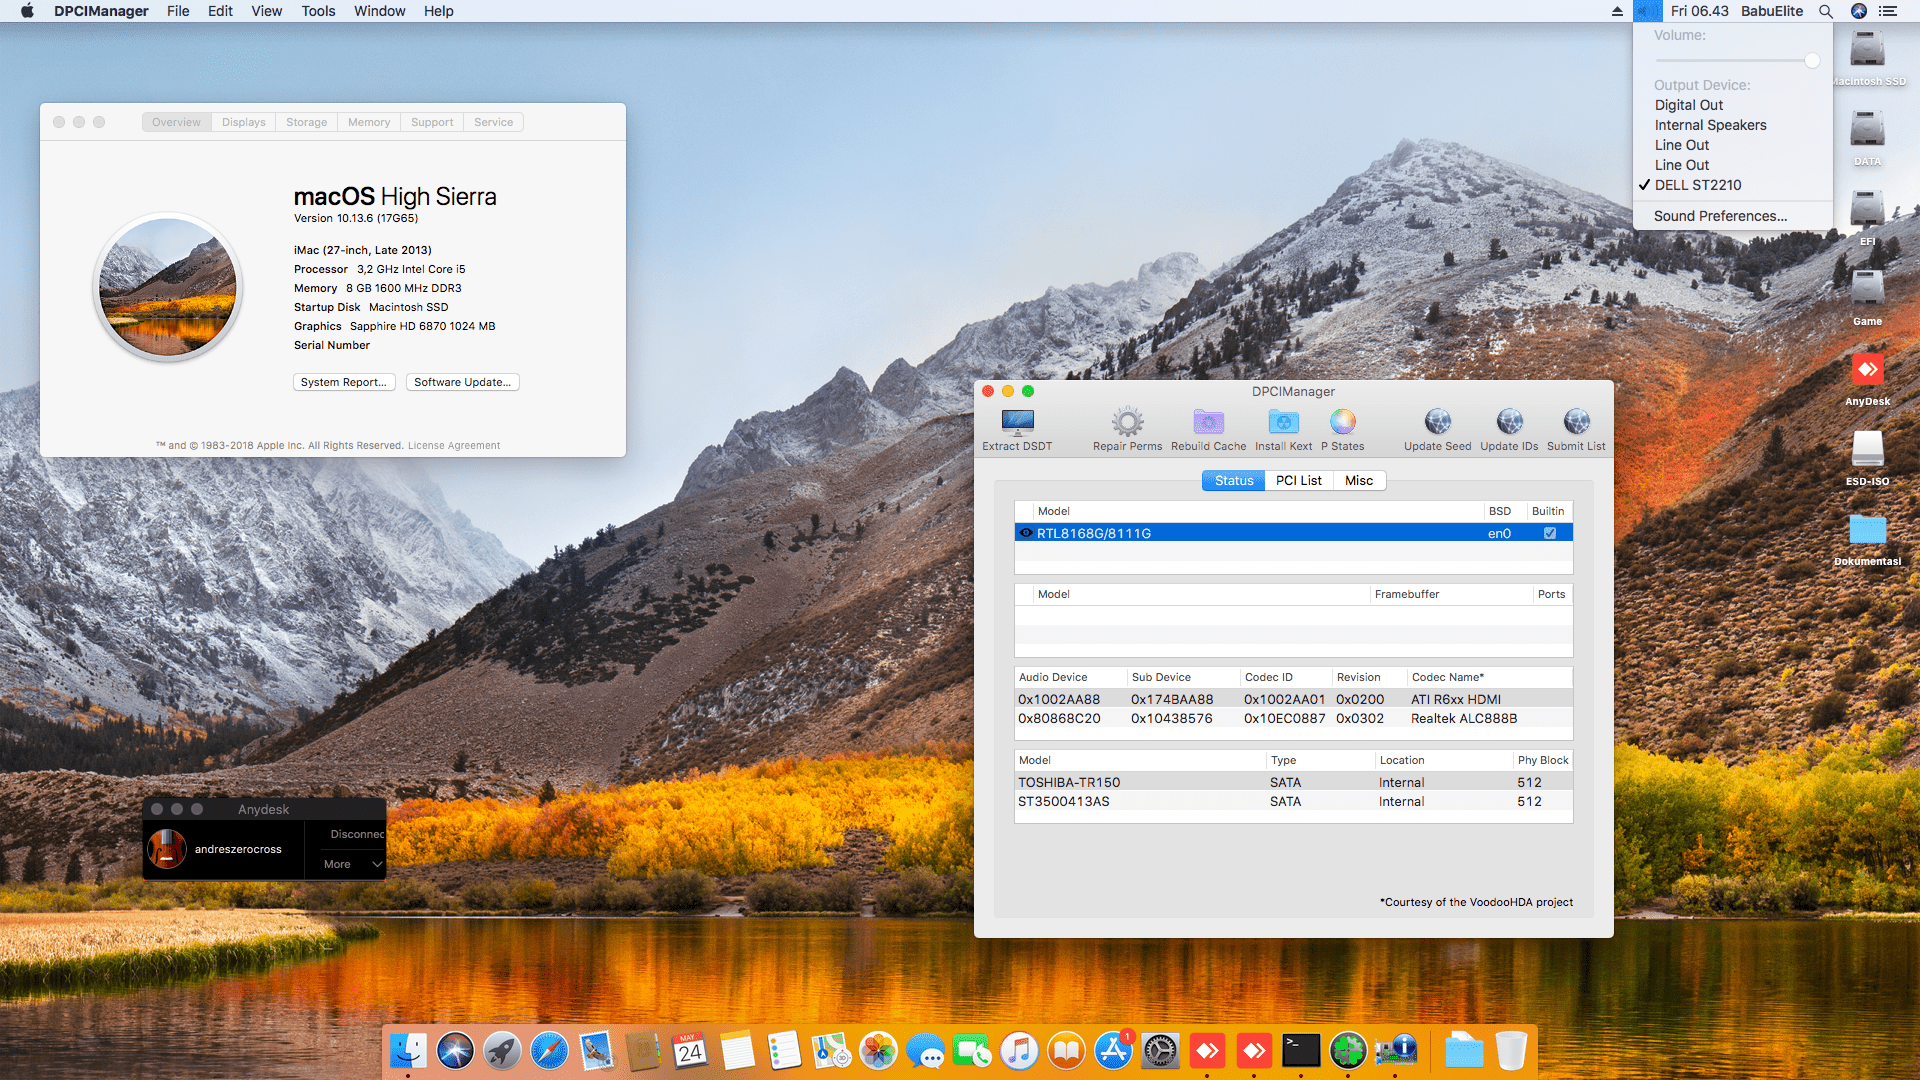 Succes Hackintosh macOS High Sierra 10.13.6 Build 17G65 at Asus H81M-C + i5 4460 + Sapphire 6870